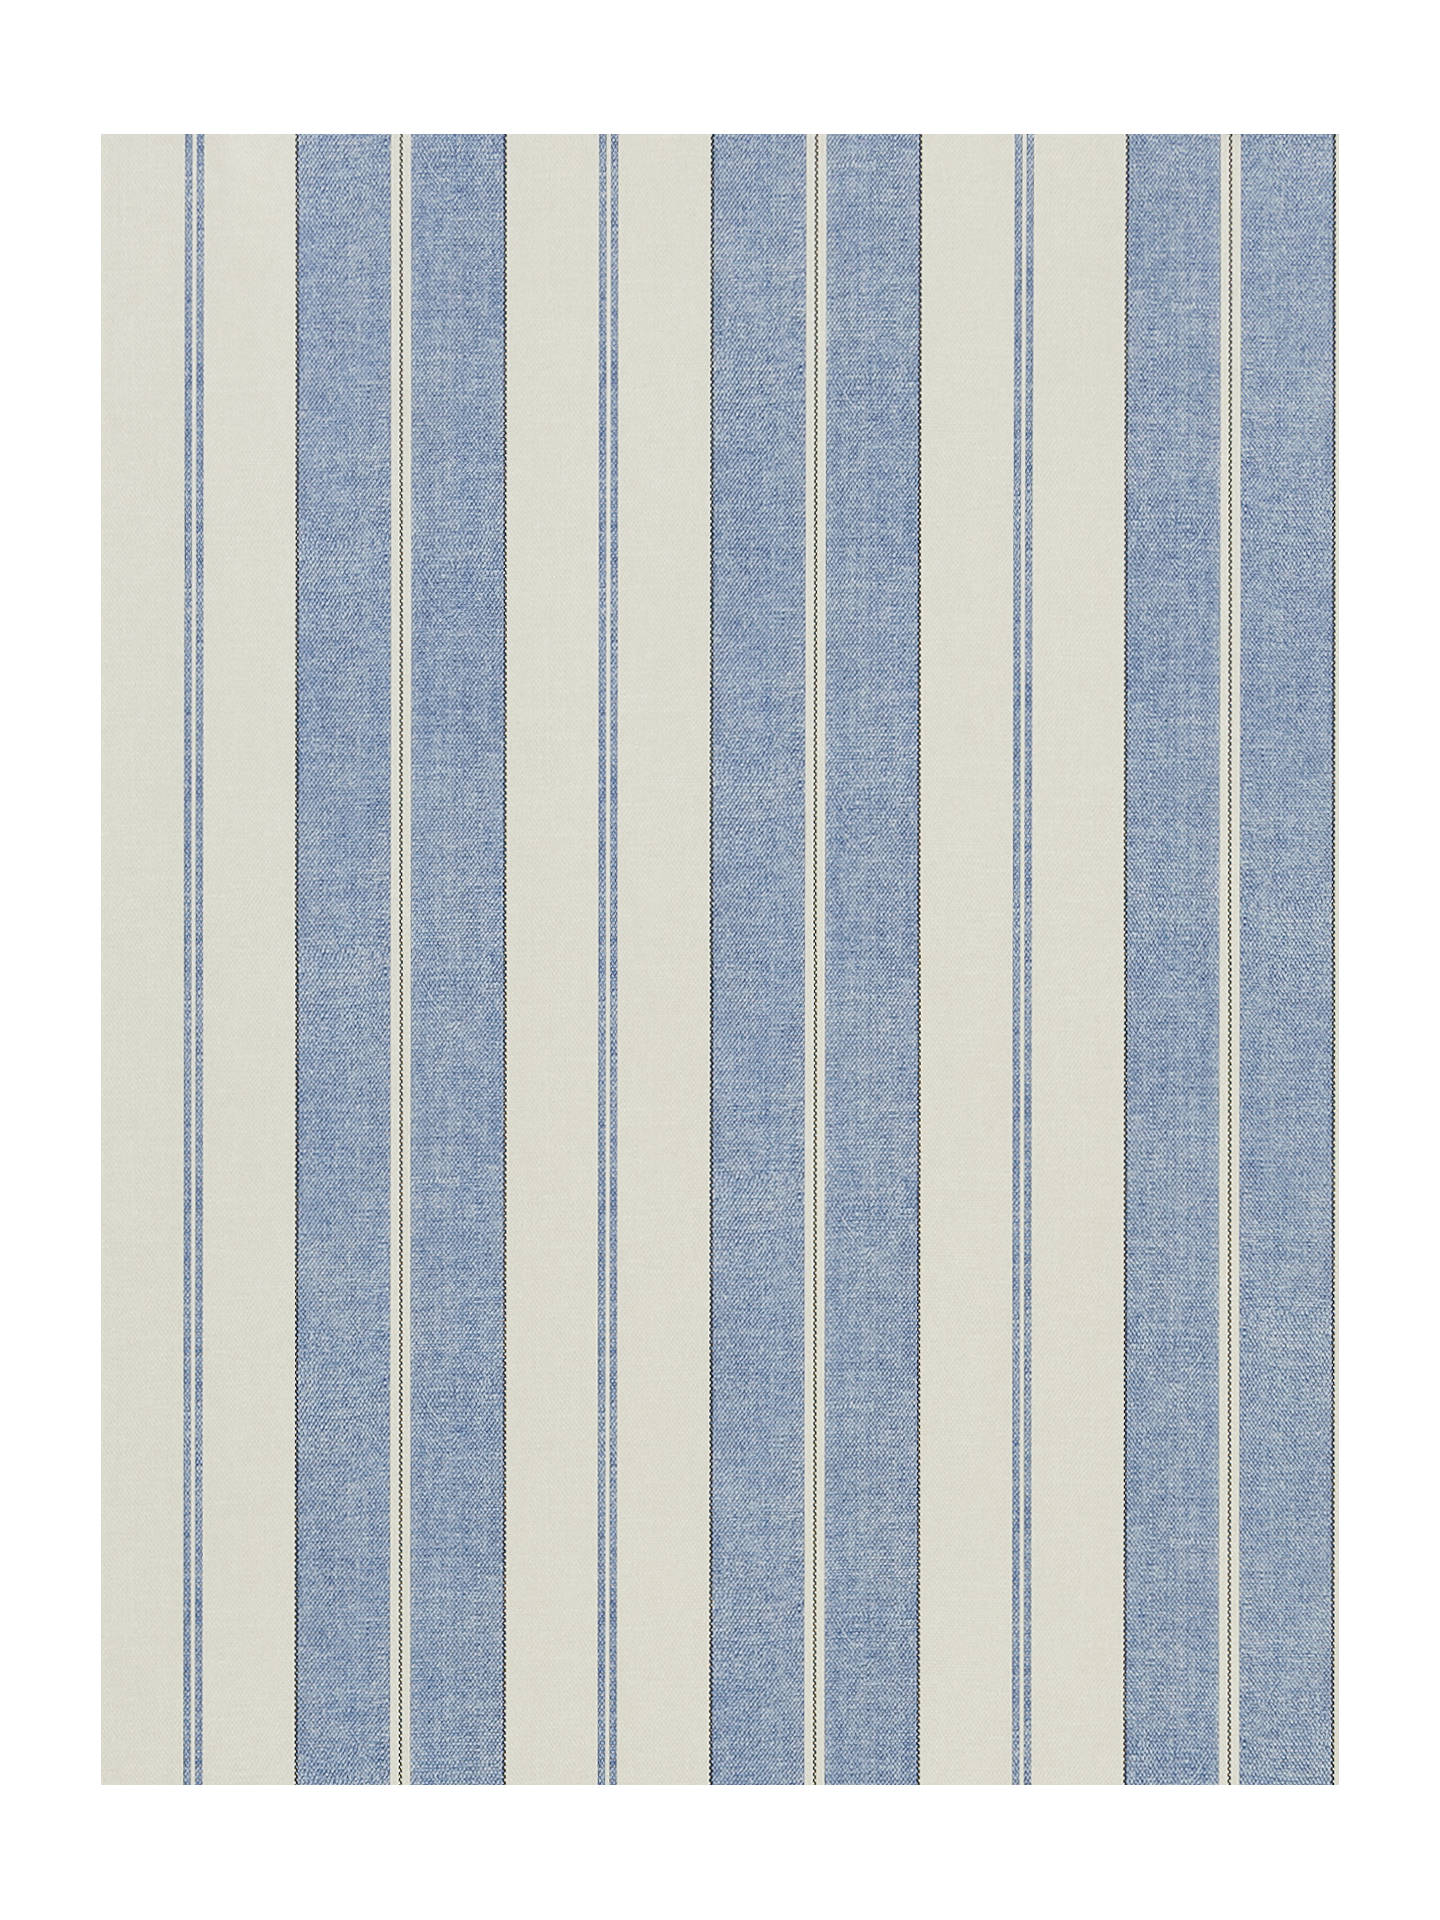 BuyRalph Lauren Monteagle Stripe Wallpaper PRL5002/01 Online at johnlewis.com